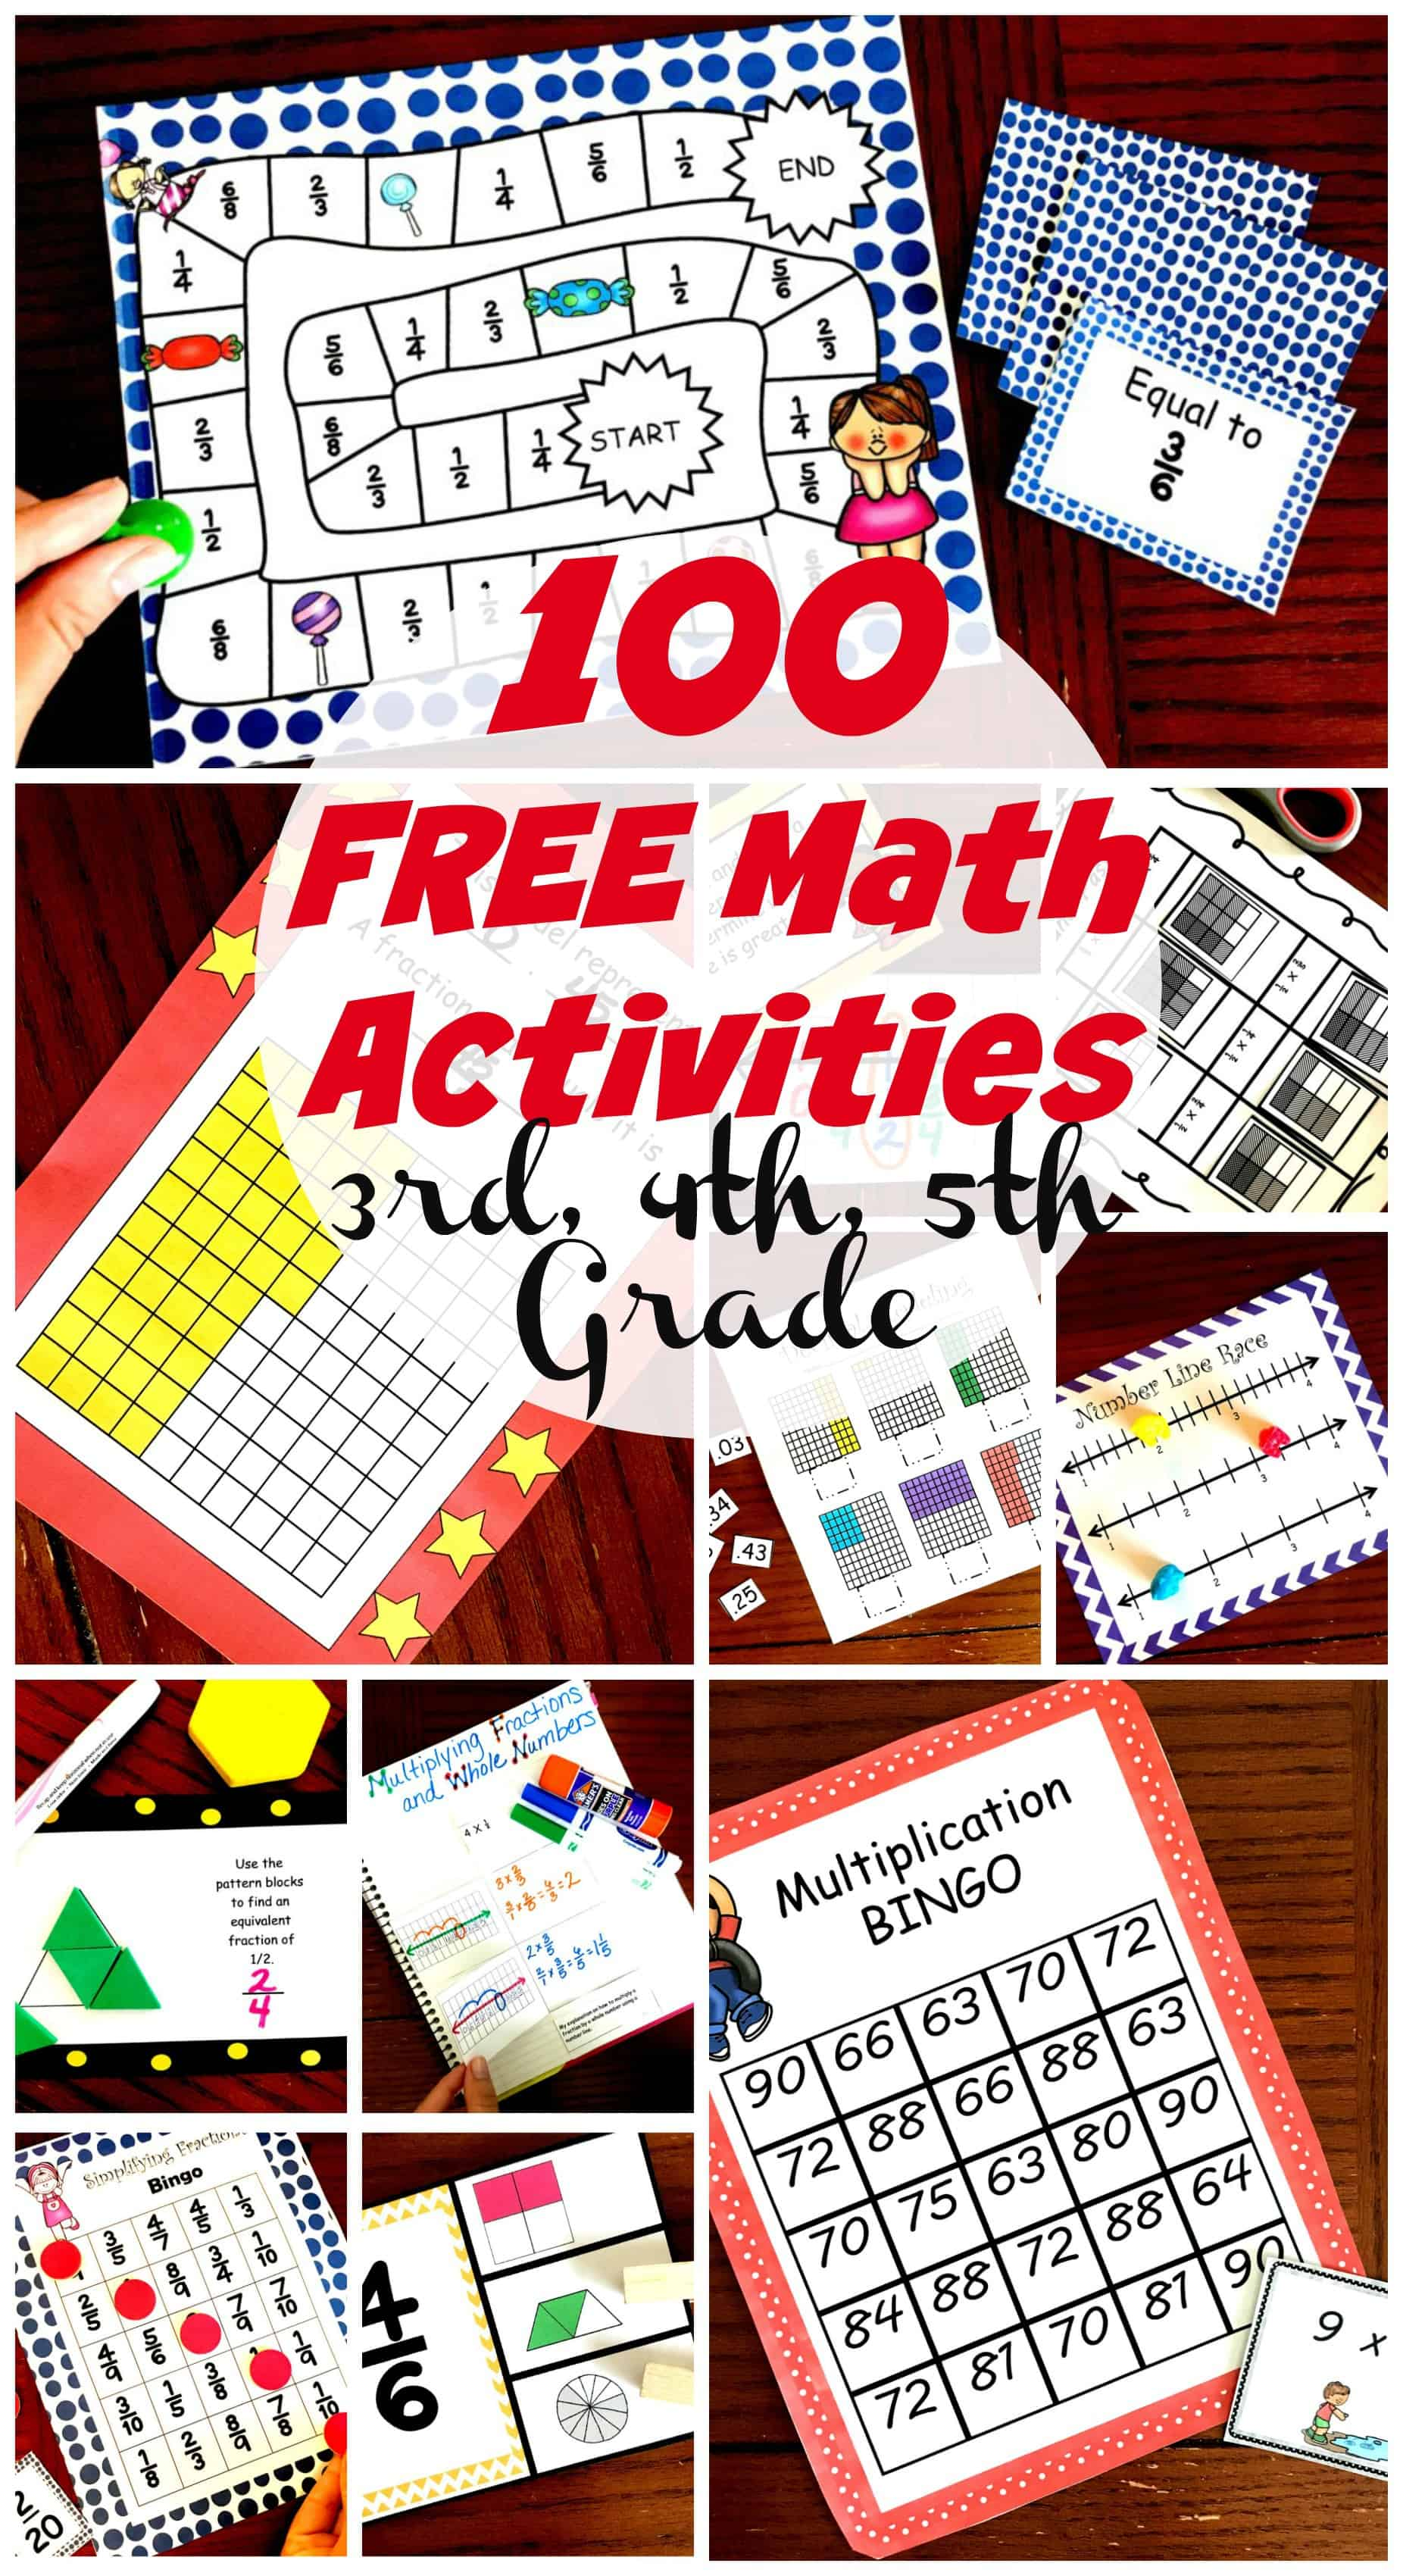 50 Awesome and Fun Math Activities for 3rd, 4th, and 5th Grade Students